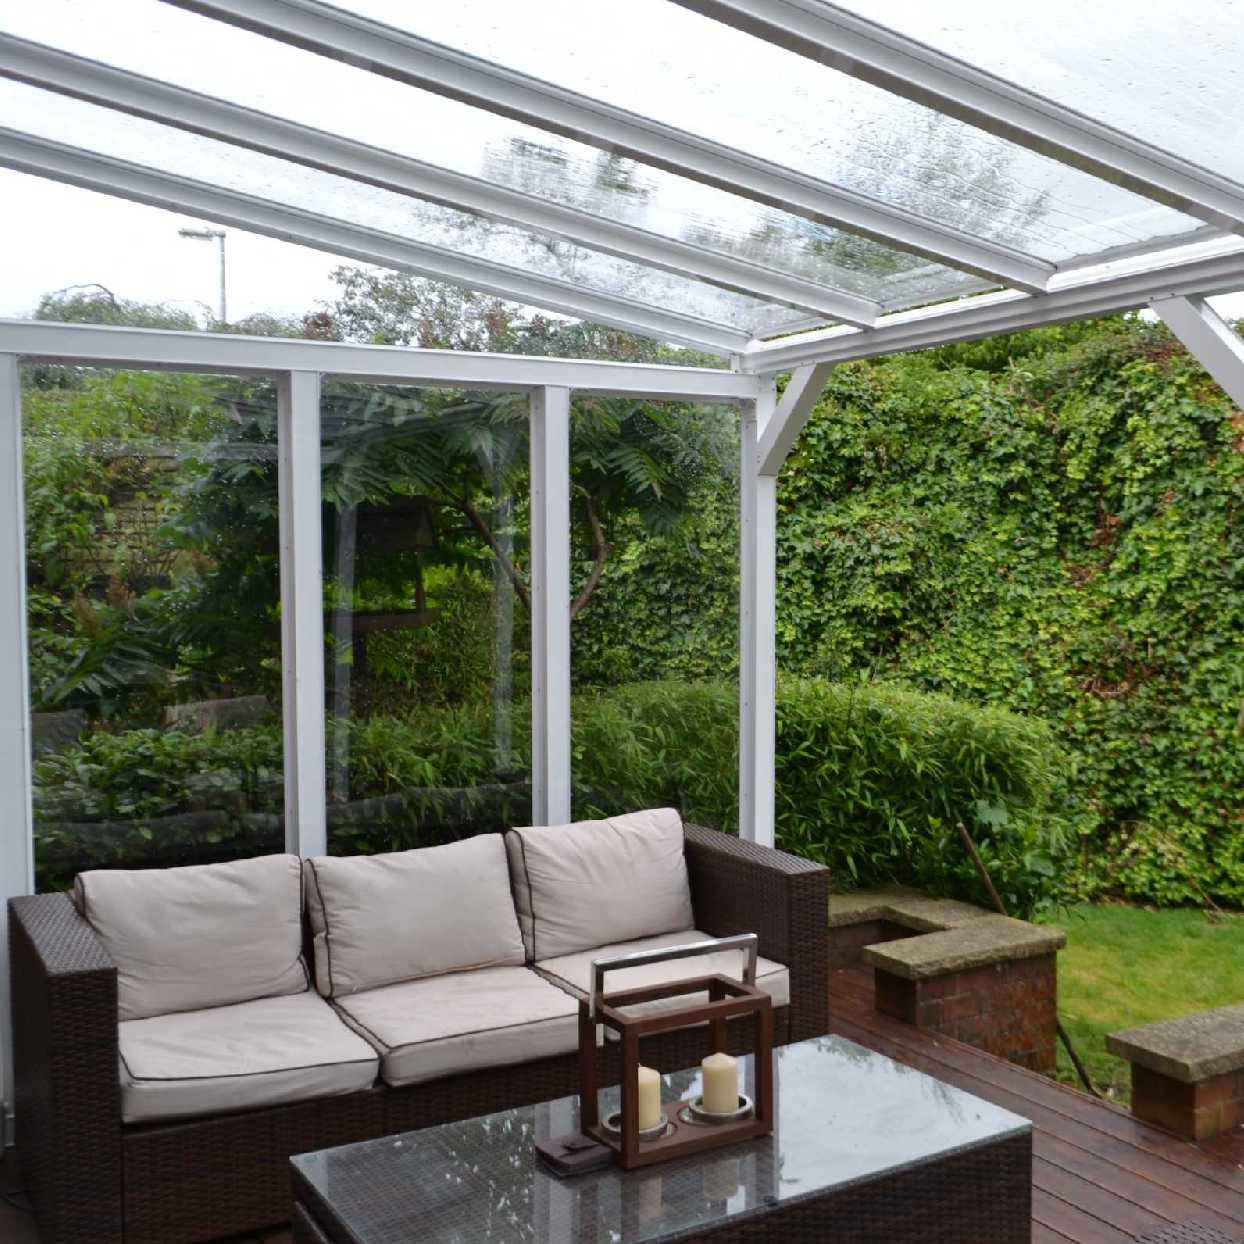 Omega Smart Lean-To Canopy with 6mm Glass Clear Plate Polycarbonate Glazing - 4.2m (W) x 1.5m (P), (3) Supporting Posts